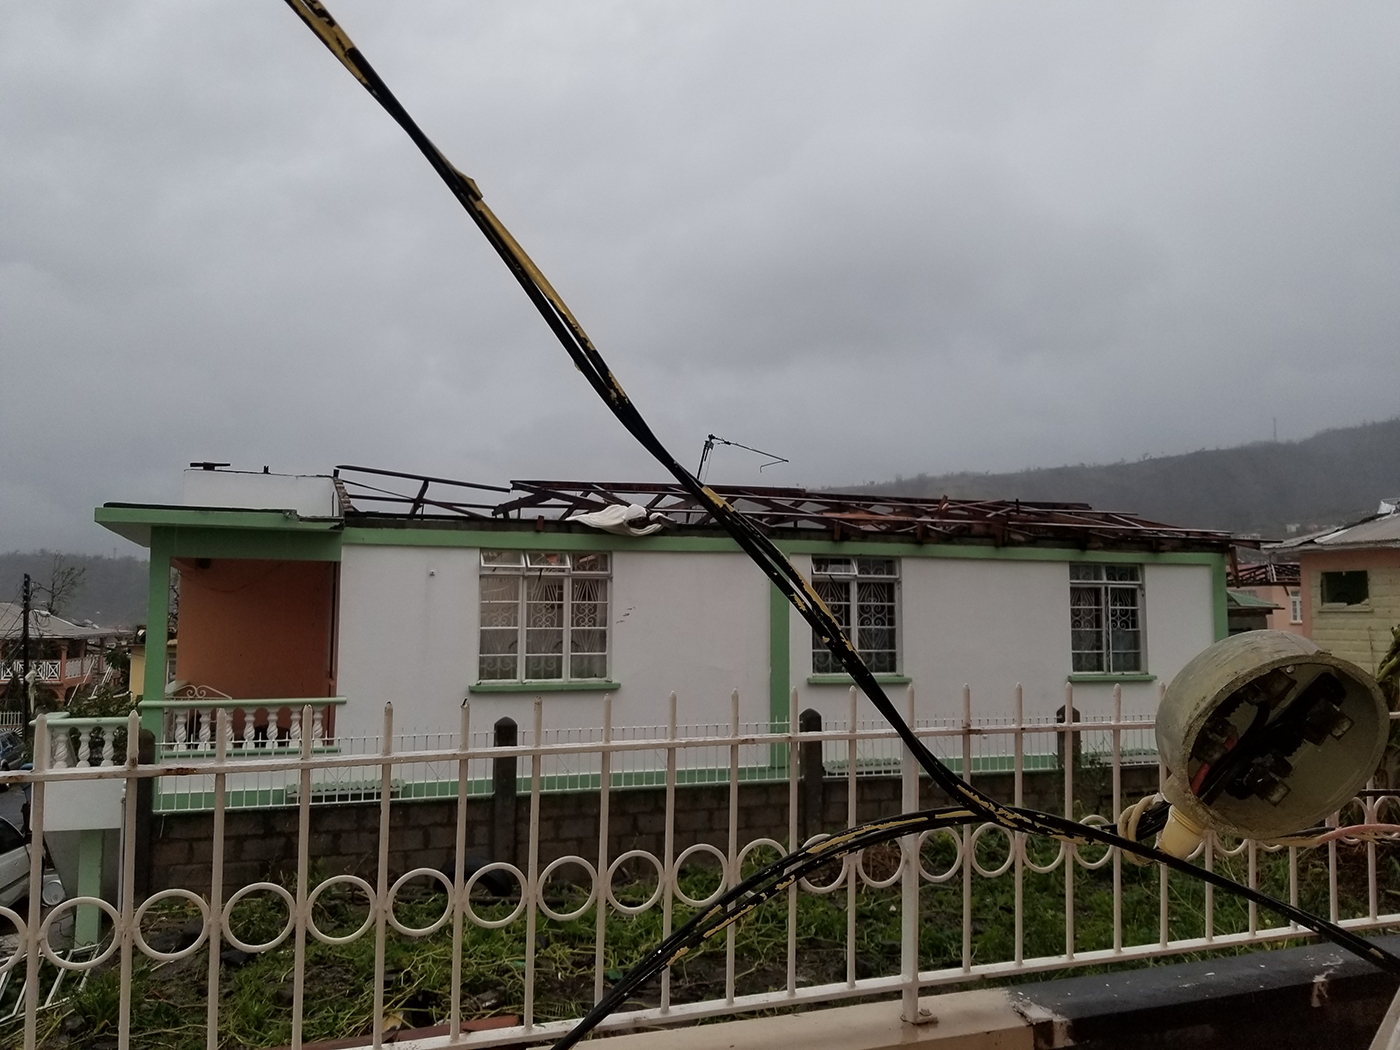 The roof was ripped off Liam Sebastien's home in Goodwill, Dominica by Hurricane Maria